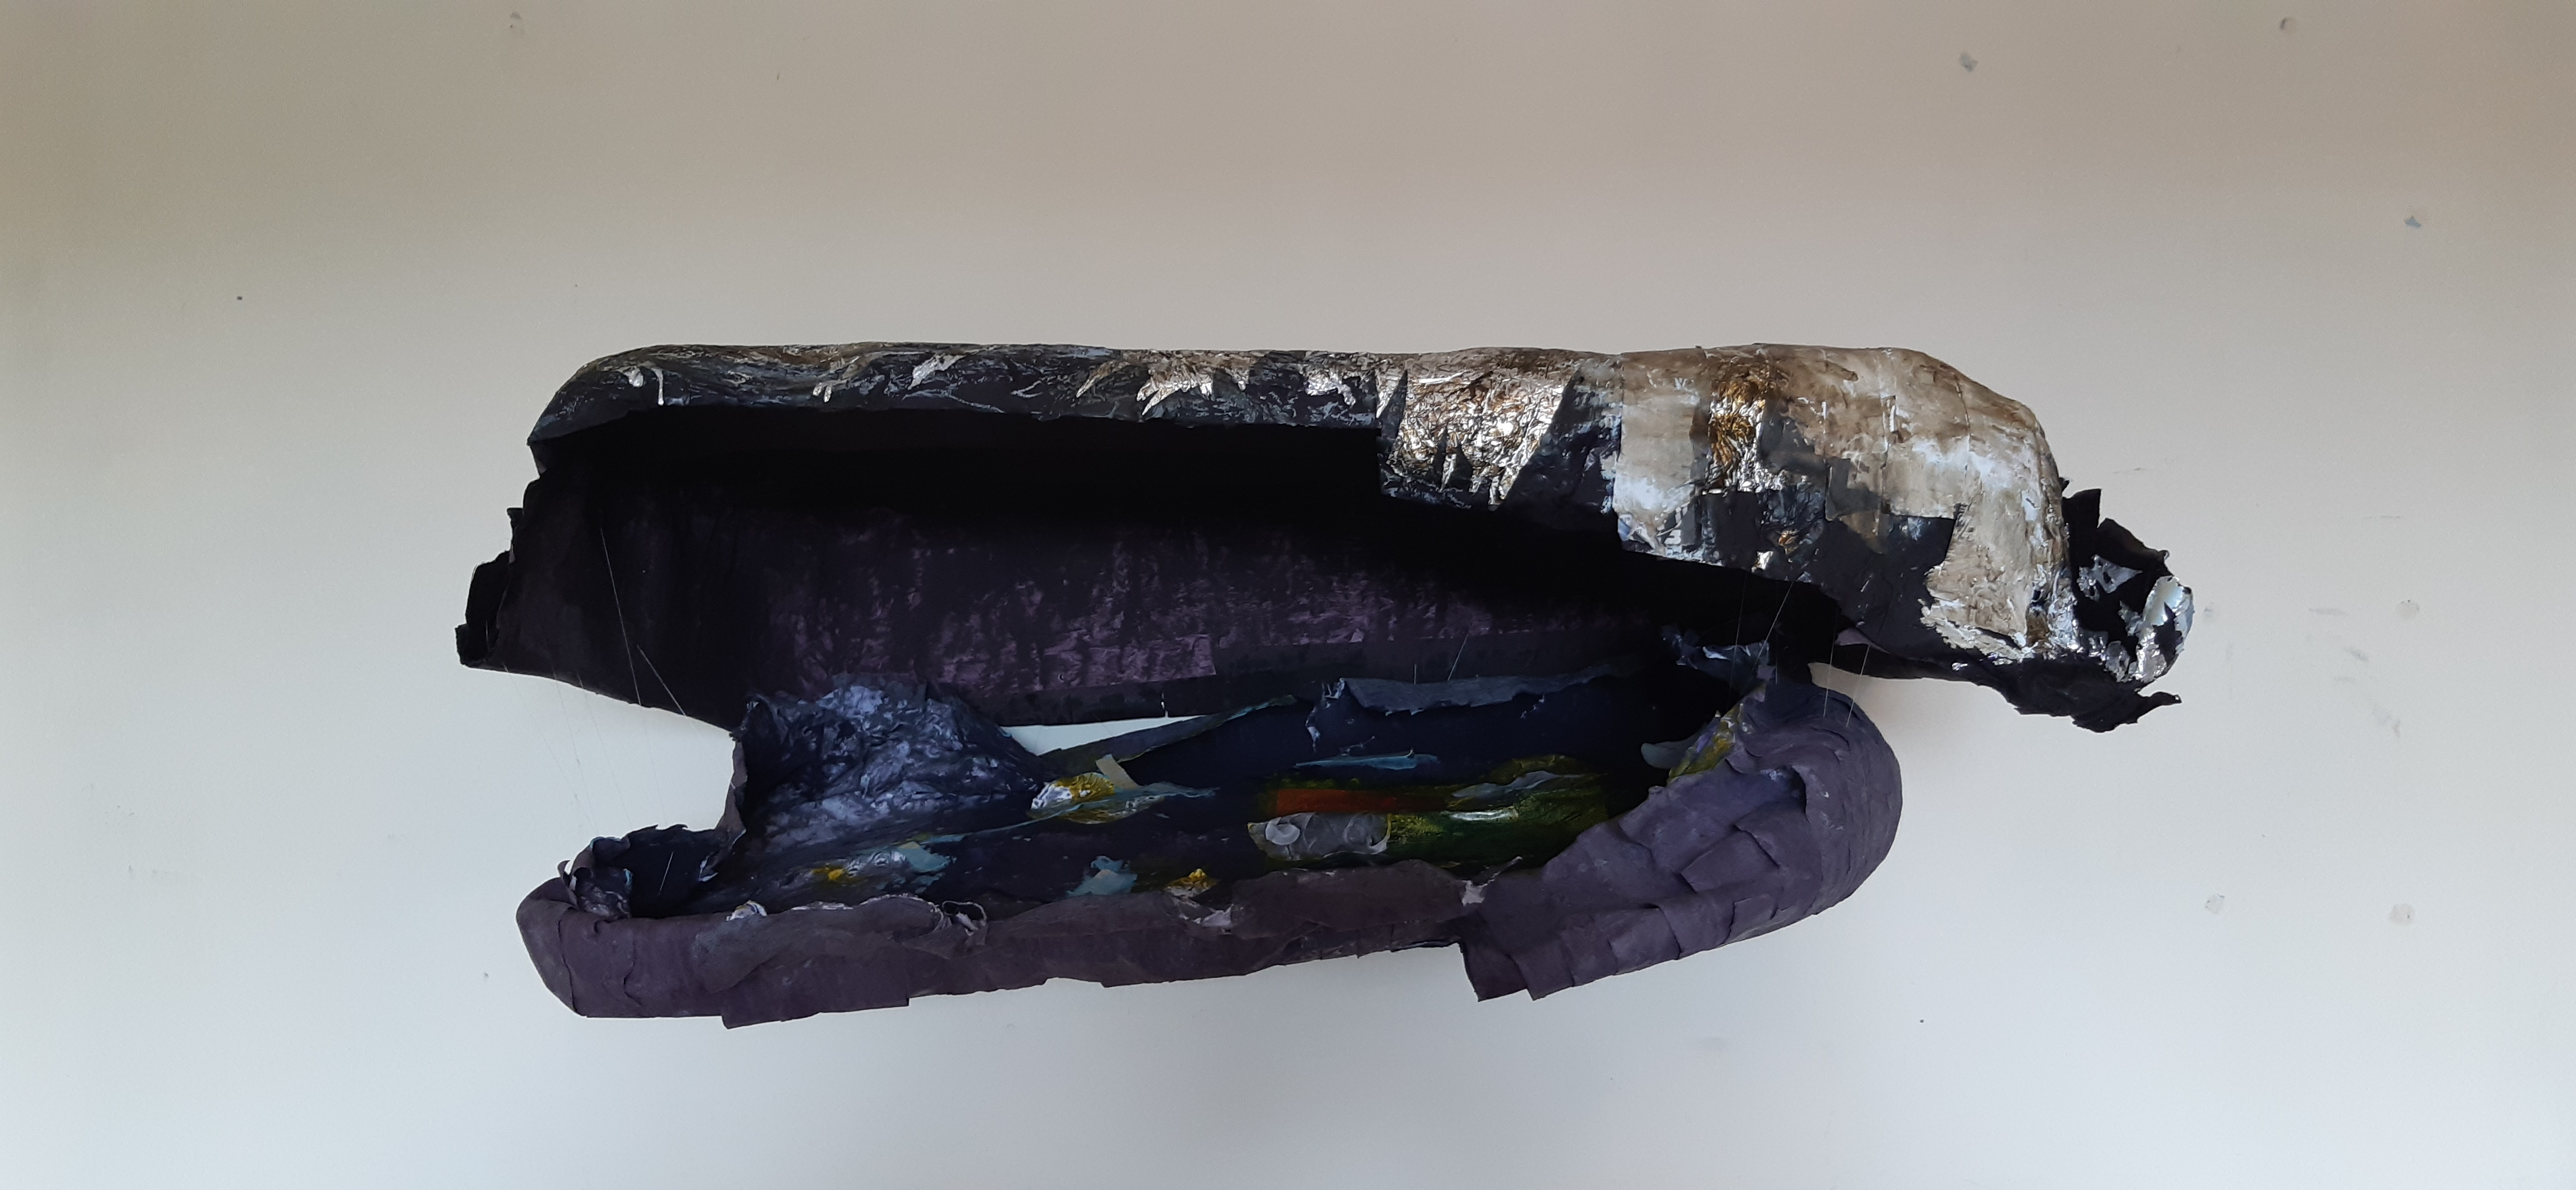 Nadia Tamerji 'Untitled', paper mache with acrylic mould and paper collage and fishing wire